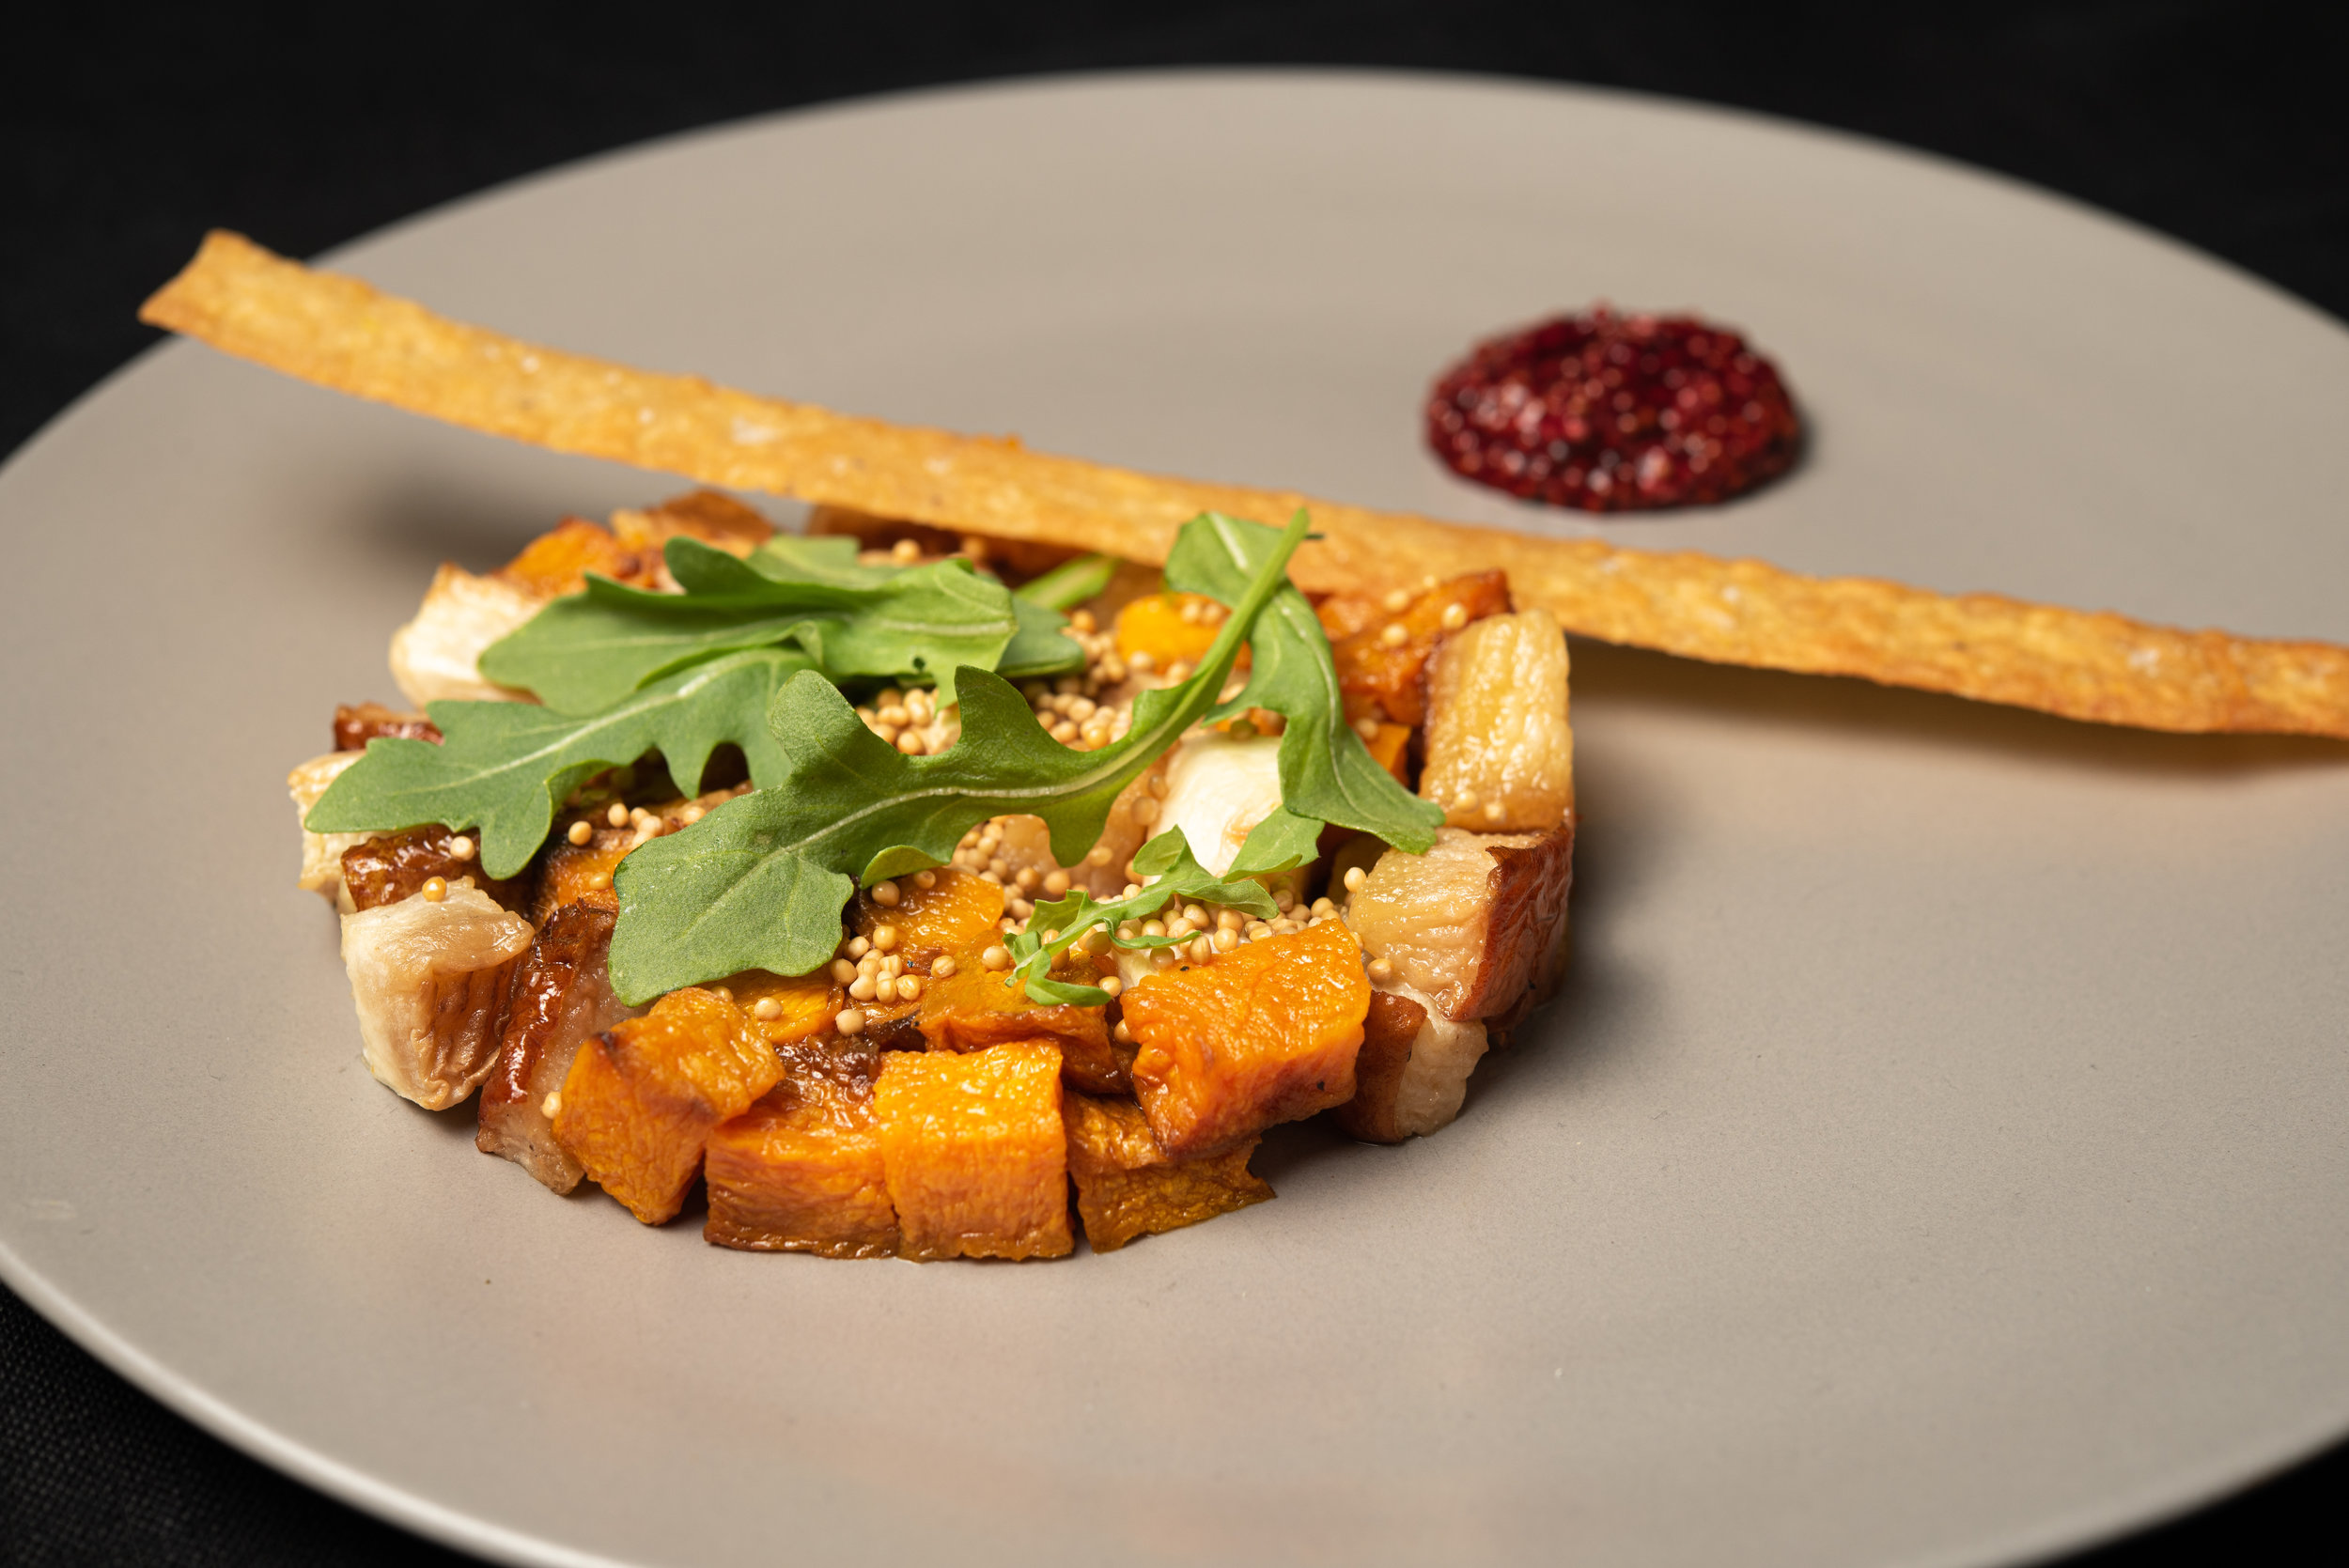 Pumpkin Tart with Kabocha Squash, Hudson Valley Apple, Goat Cheese, Apple Cider Gastrique, Greens, Herbs.jpg